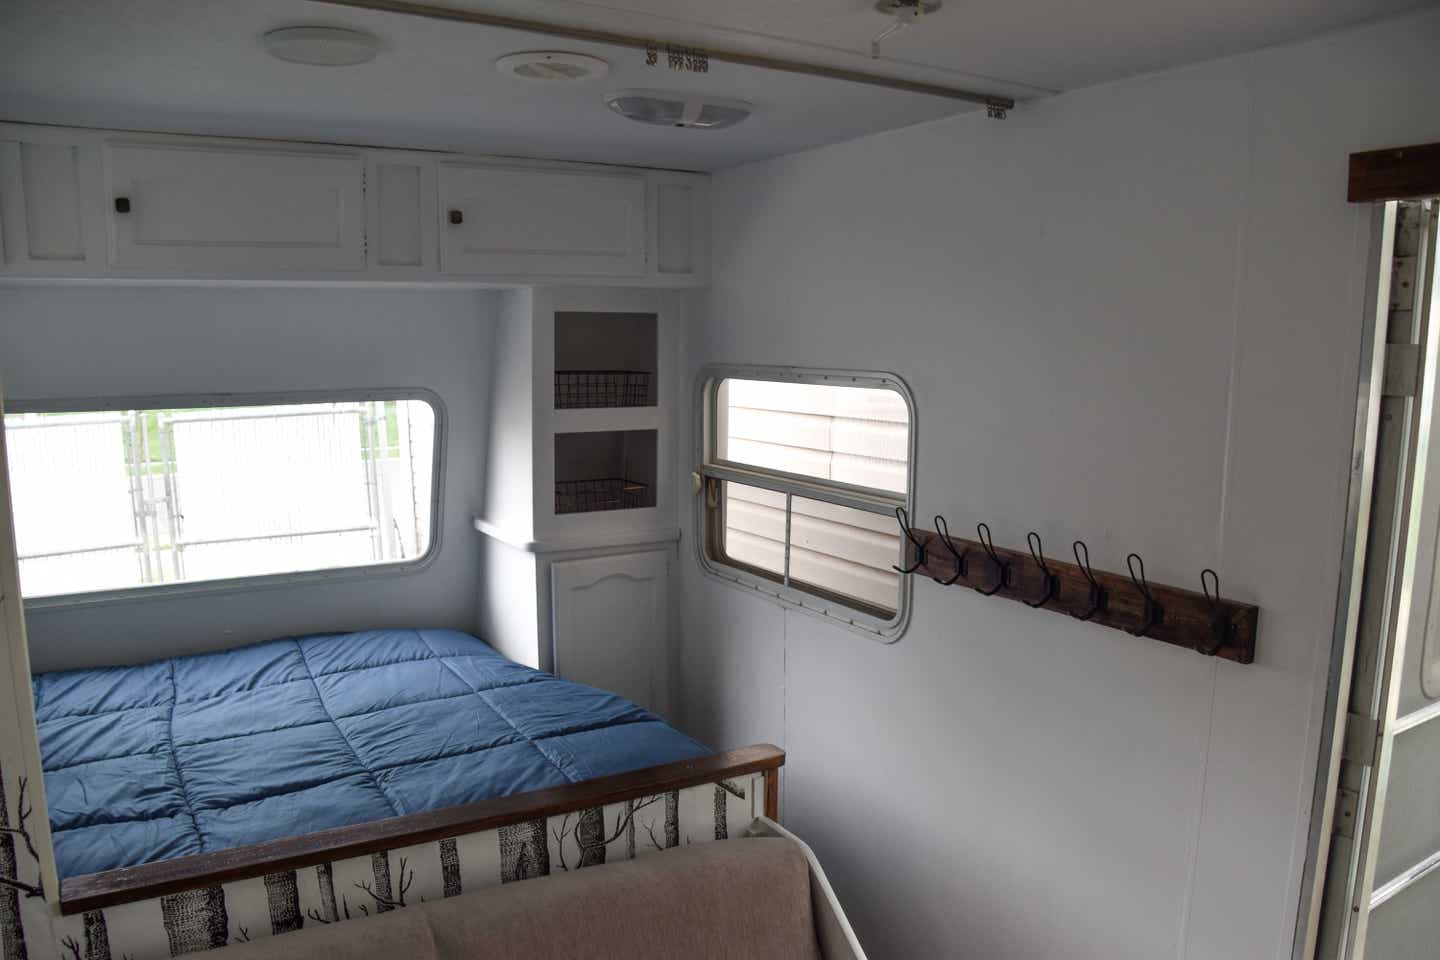 A bedroom in Jessica's RV